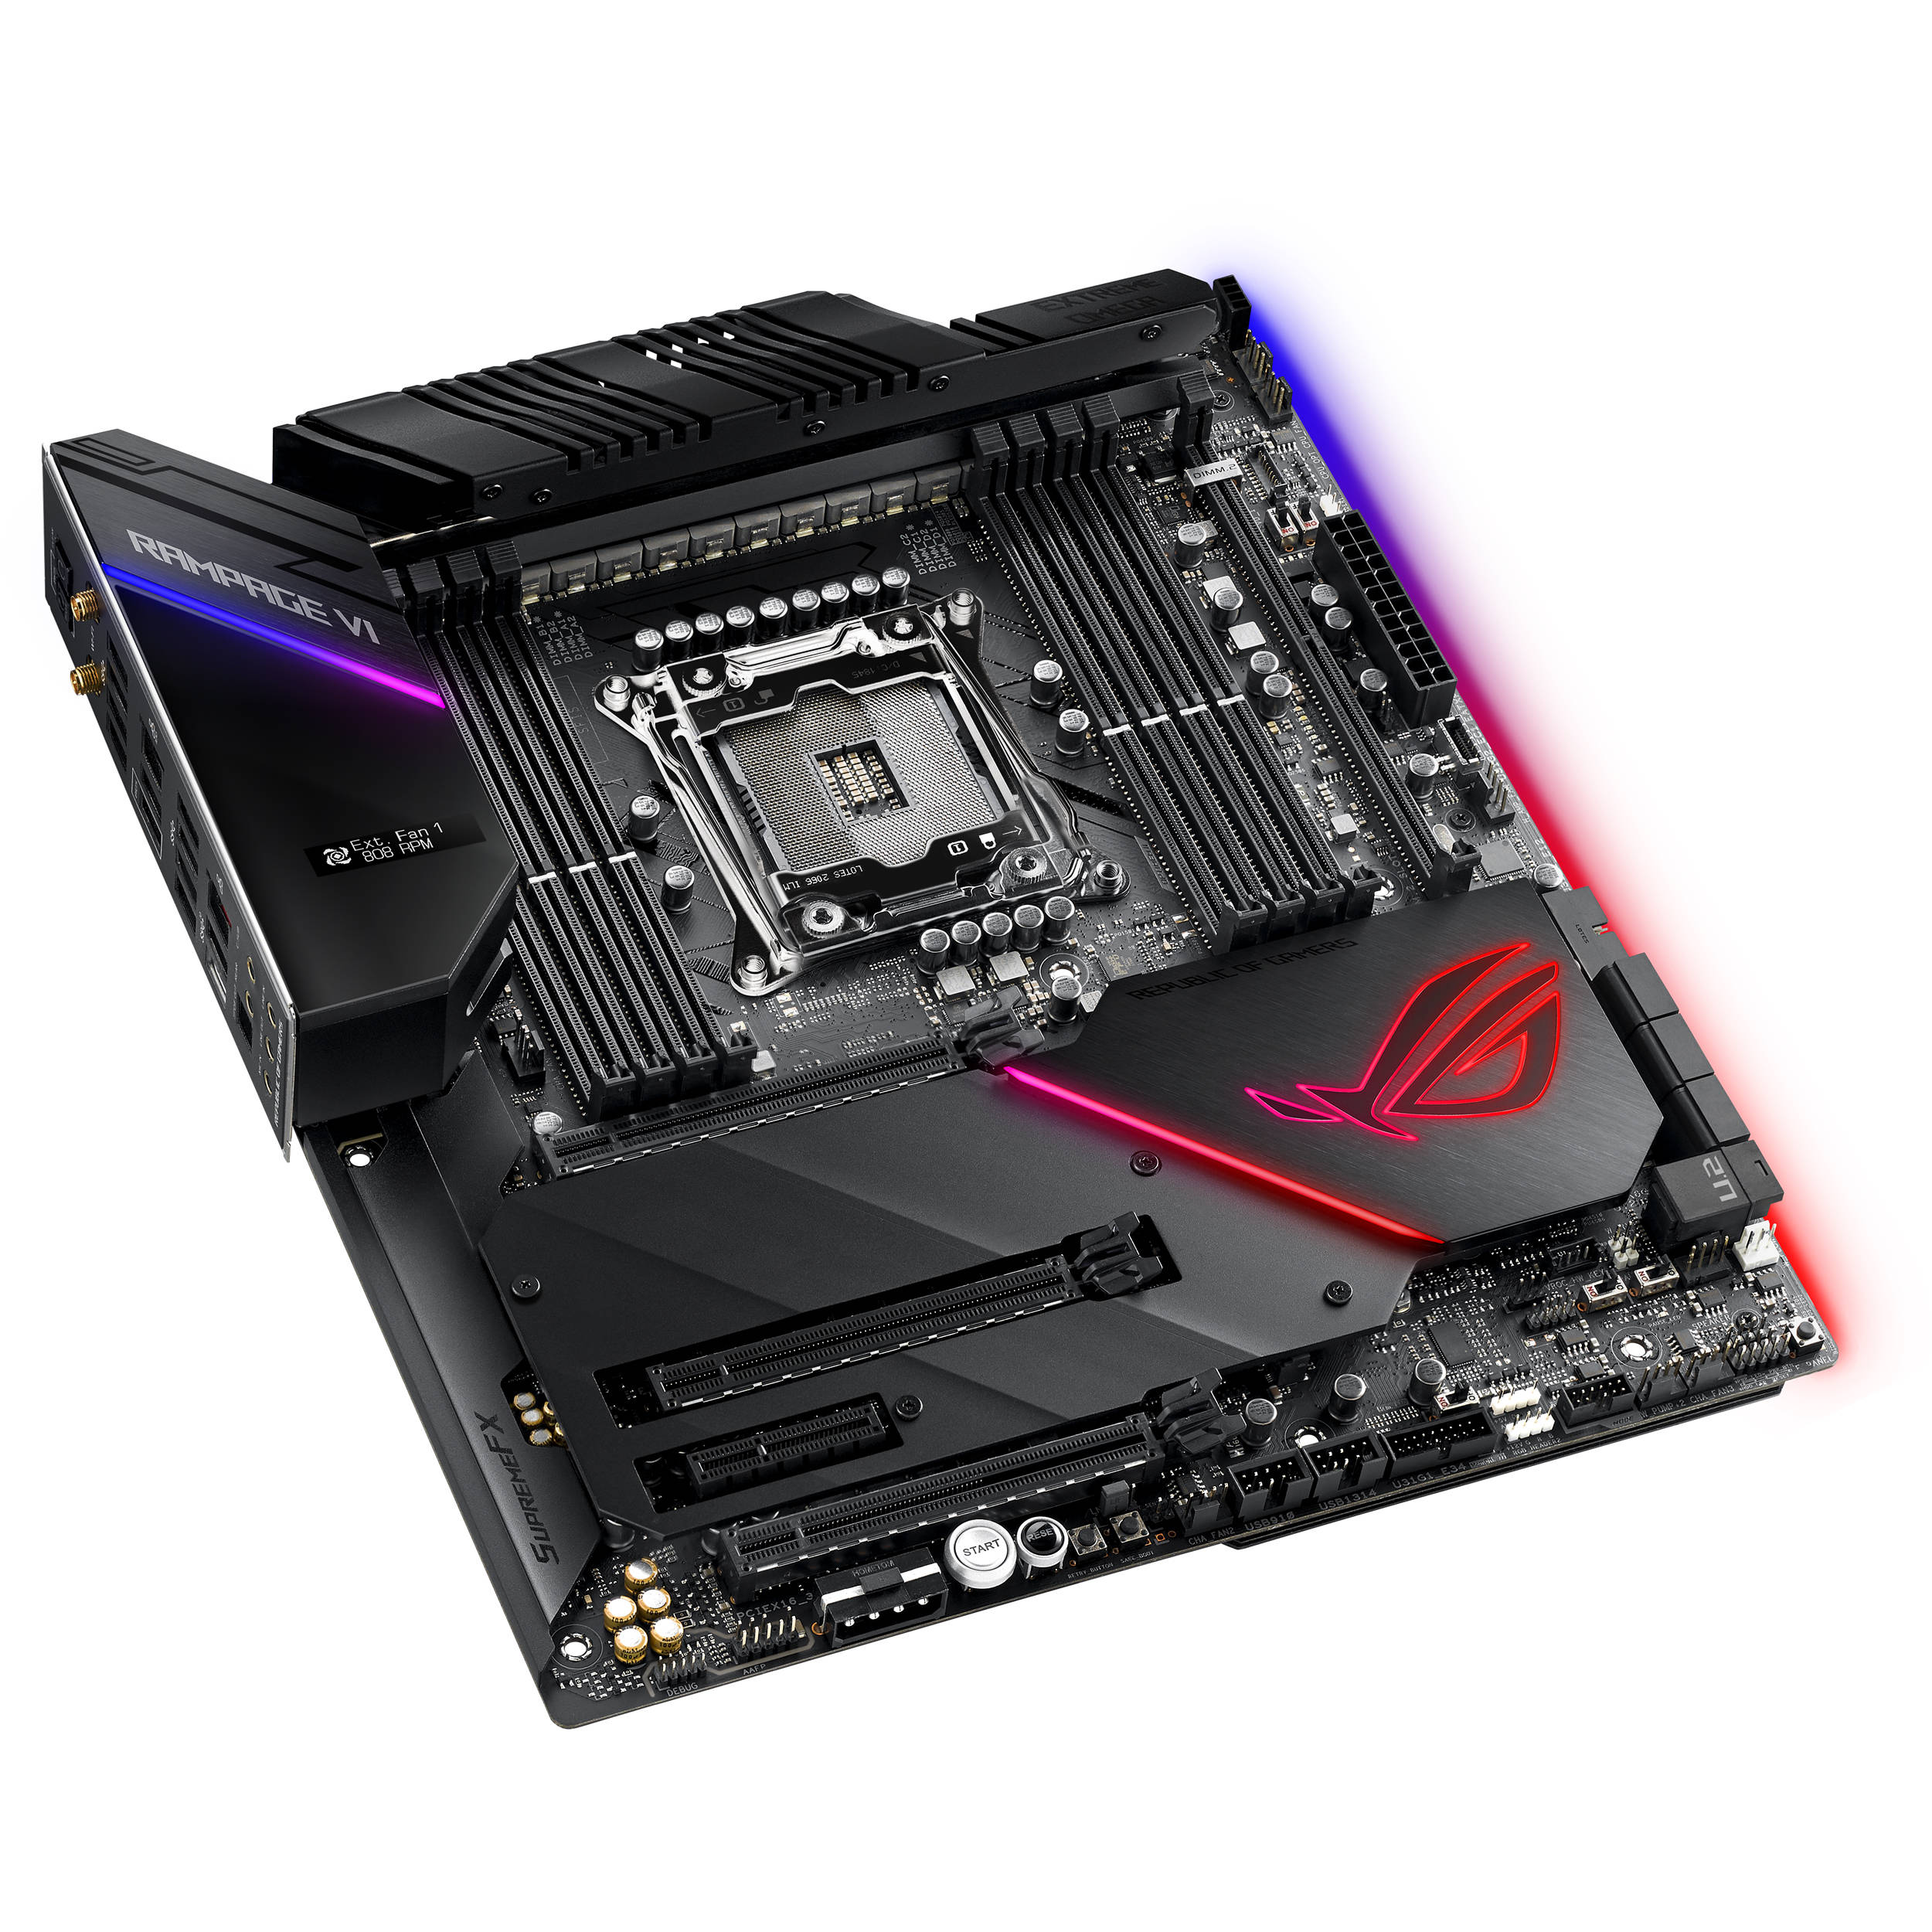 Asus Maximus V Extreme PC Diagnostics Driver for Windows 10